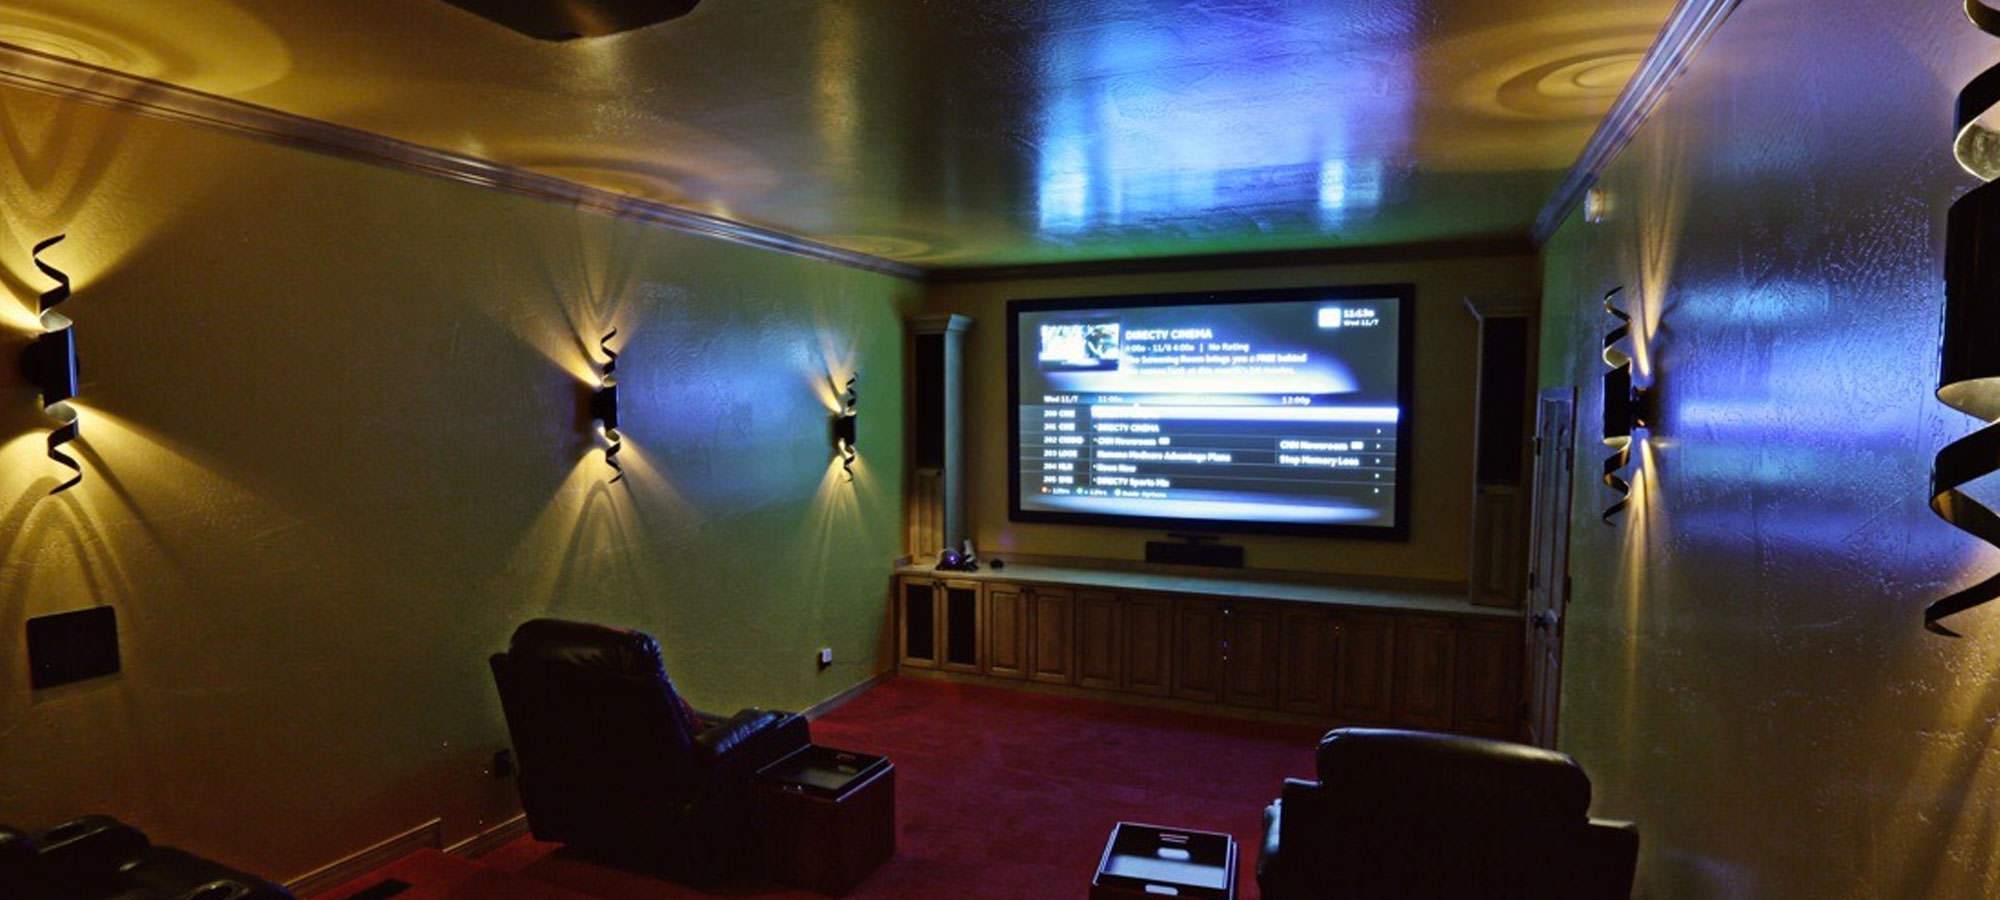 Importance of High Quality Screen for Your Home Theater Projector